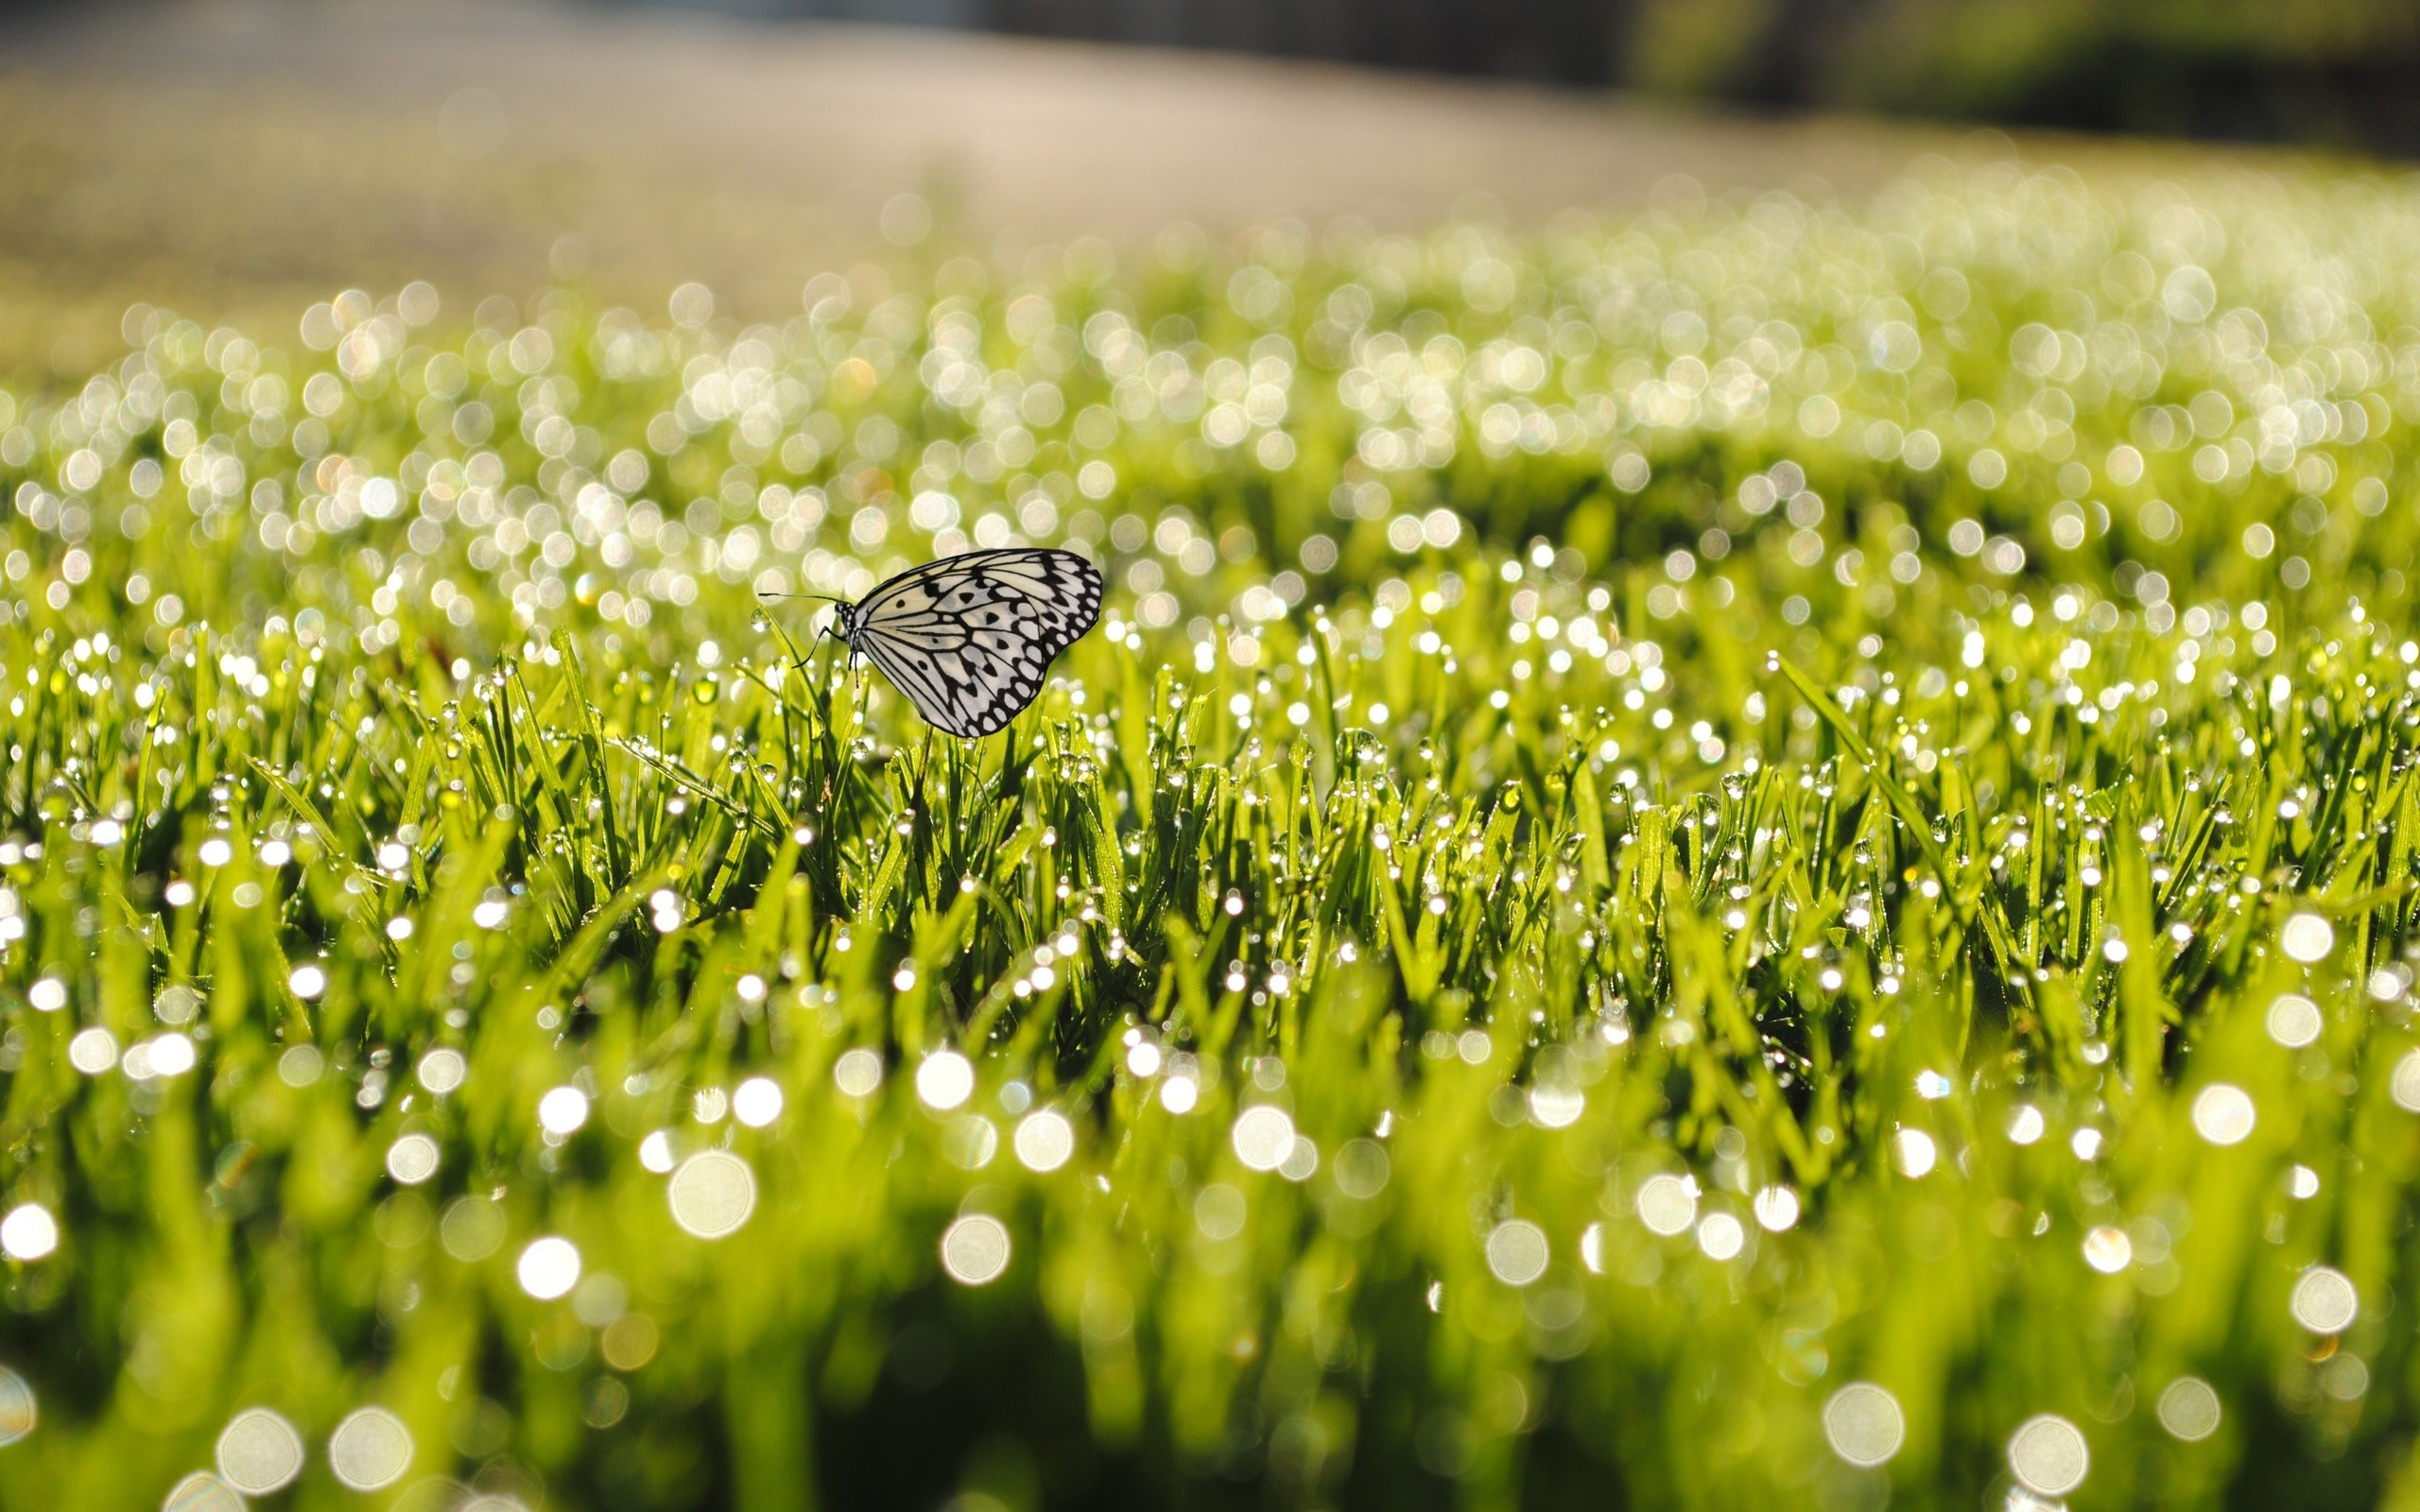 Butterfly white wings with black speckles on the grass, photo 2560x1600.